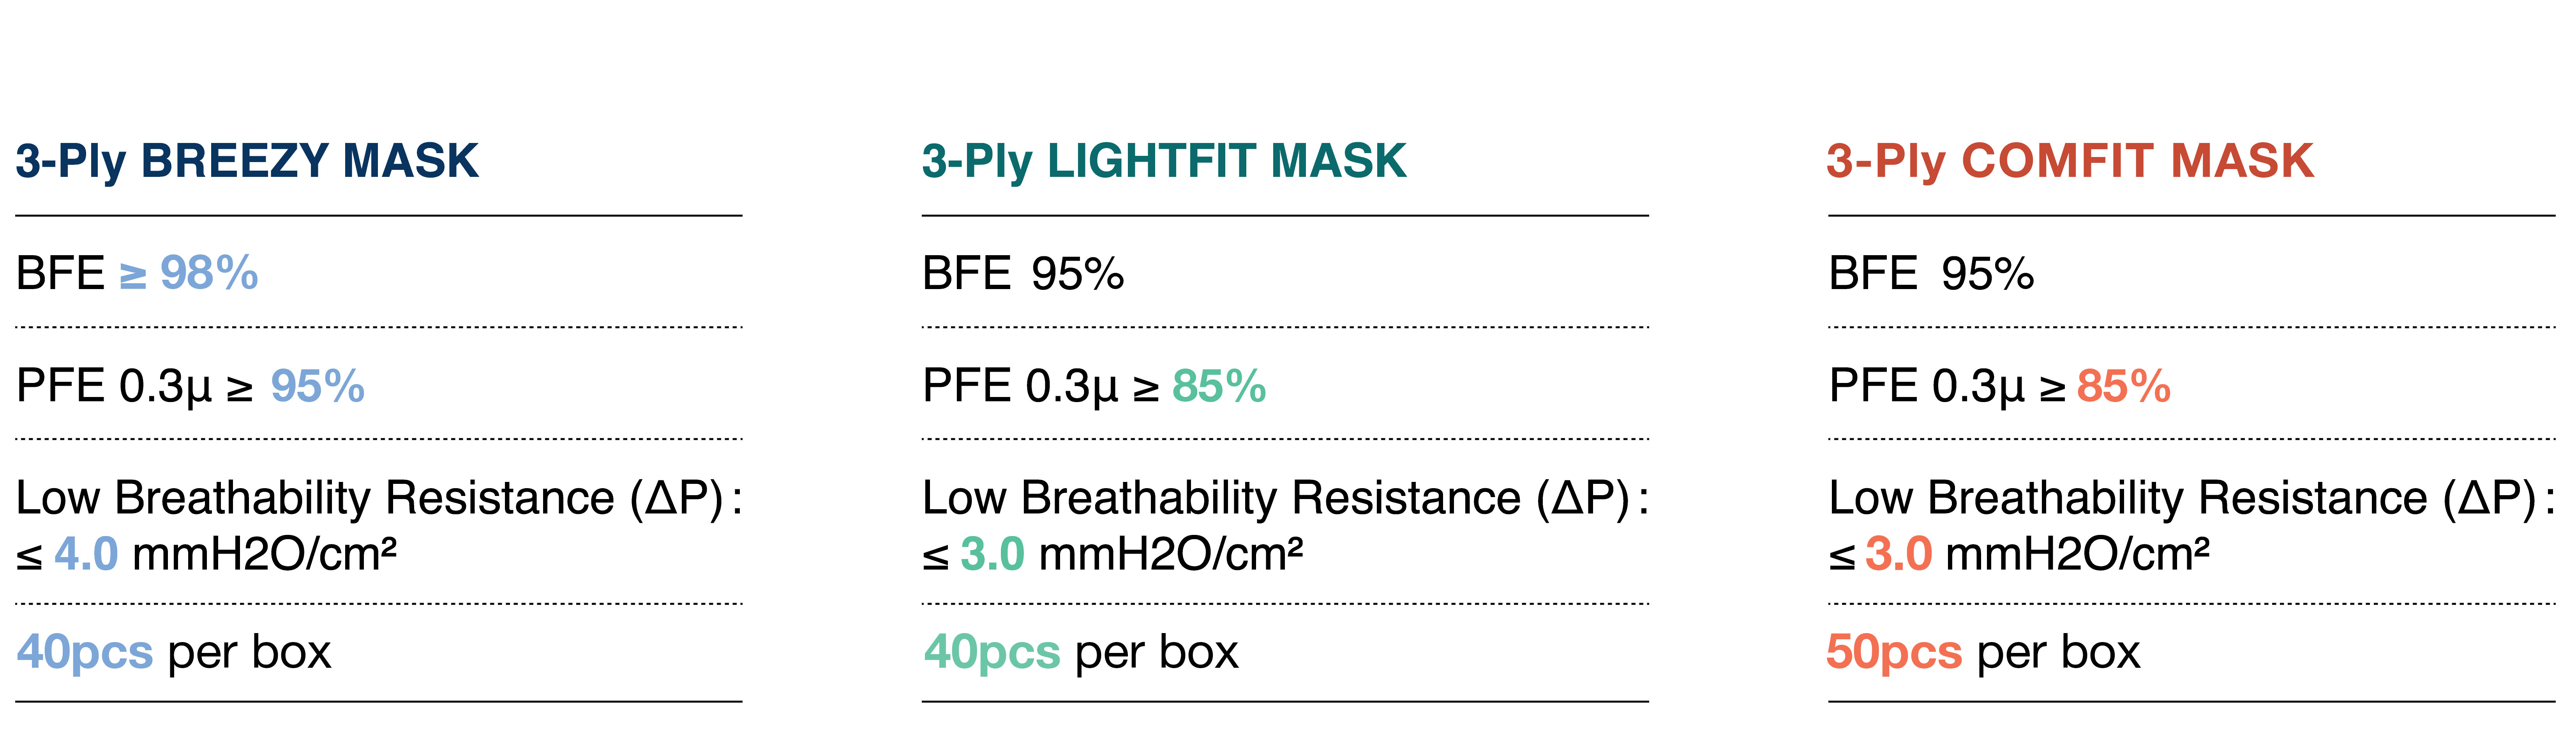 MaskPro-Packaging-Box_BFE-90_080620_FAOL.png